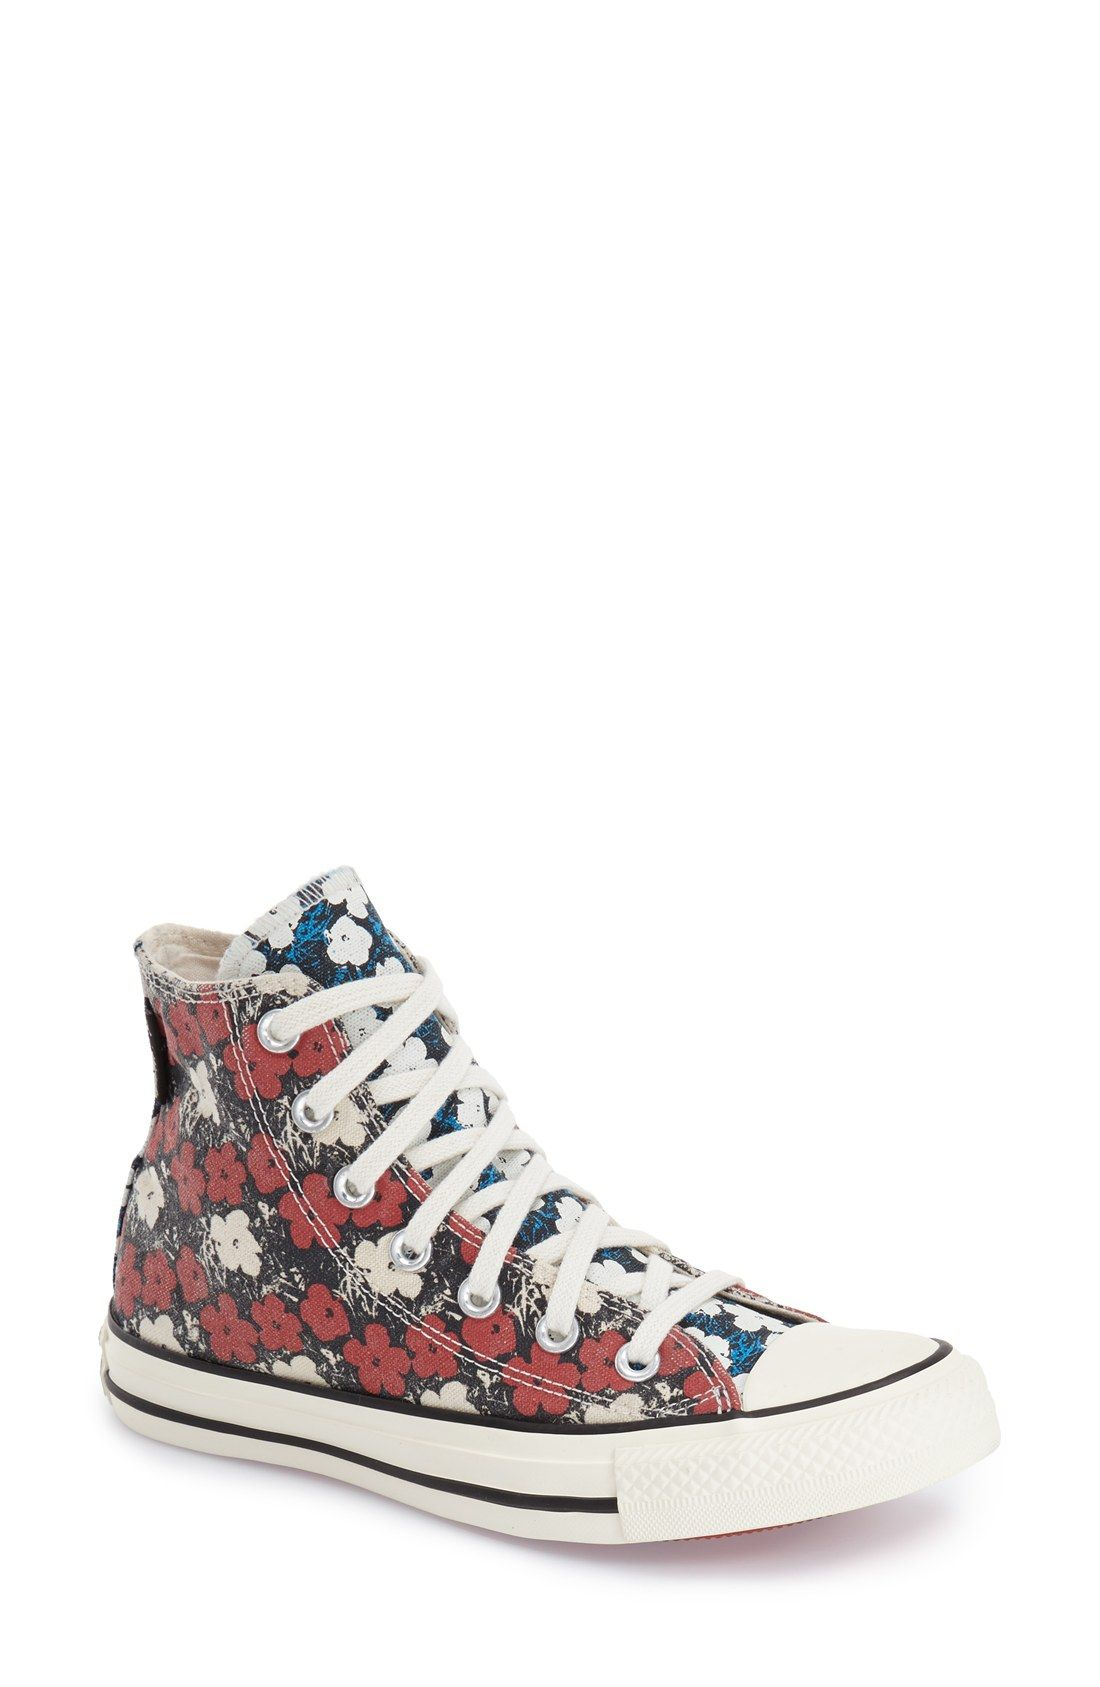 188532f08f8ec5 Converse Chuck Taylor® All Star® Andy Warhol Collection High Top (Women)  More